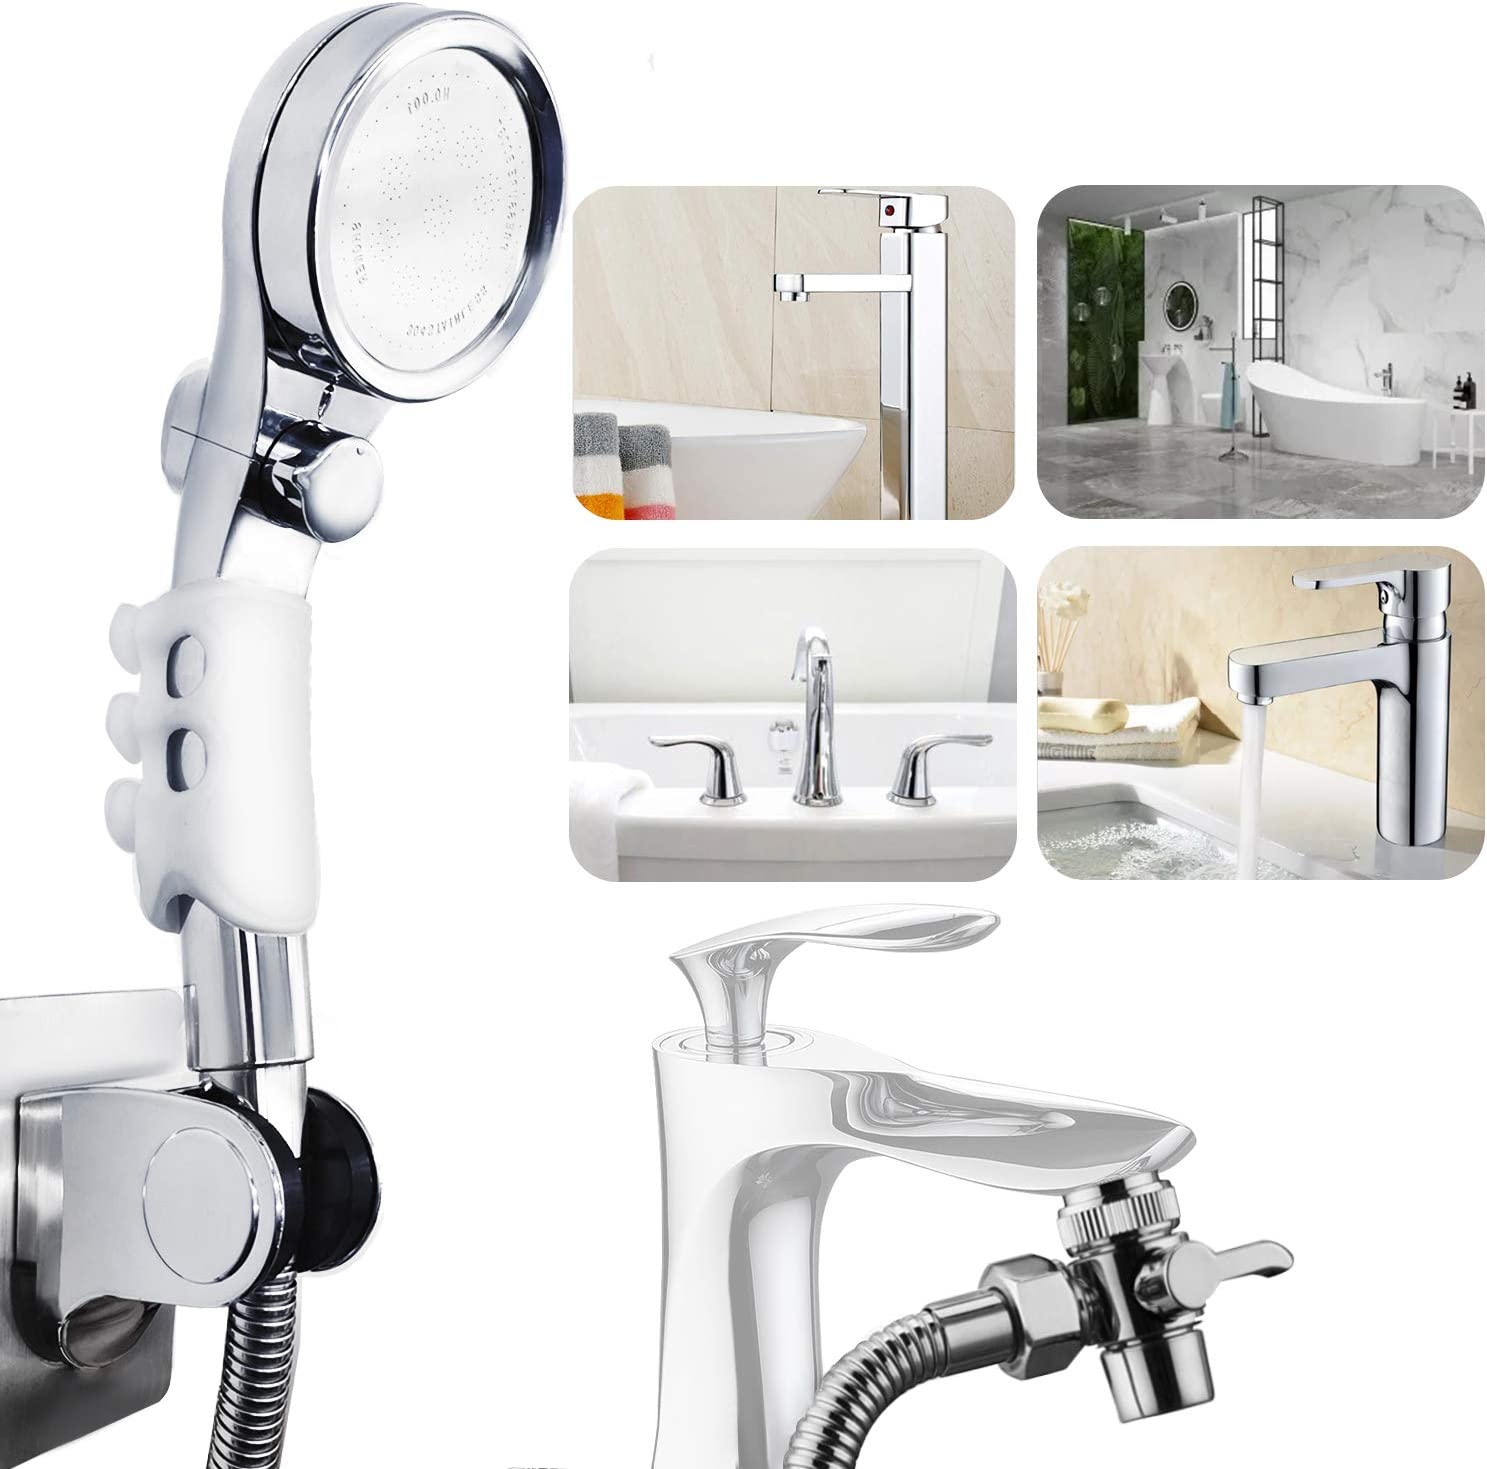 GUDWING Faucet Sprayer Attachment, High Pressure Shower Head with One Key On/Off, 5 Feet Shower Hose Quick Connect on Kitchen Bathroom Faucet Bath Tub Spout, Great for Easy Hair Washing Dog Baby Bathe